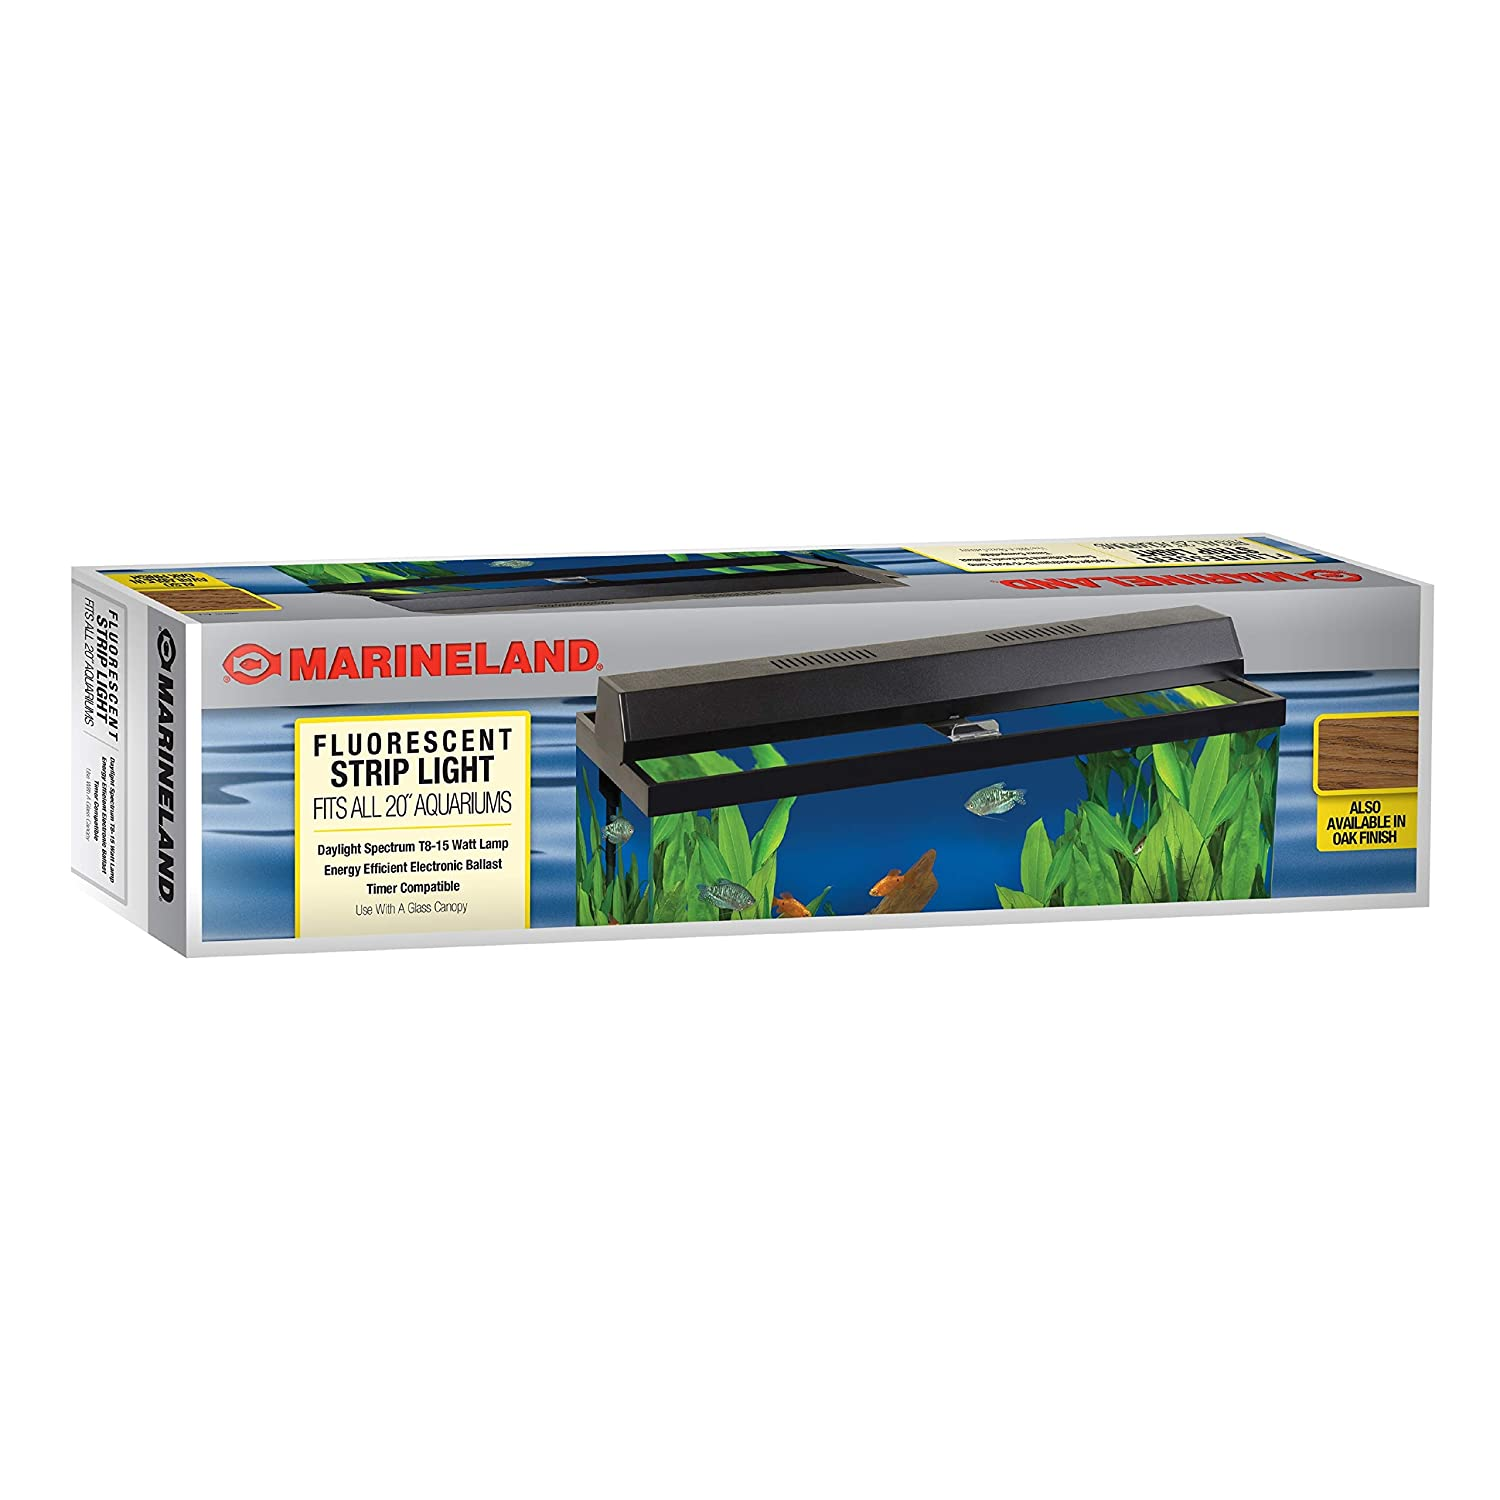 Perfecto Manufacturing APF26202 Marineland Fluorescent Perfect-a-Strip Light Reflector for Aquarium, 20-Inch, Black by Perfecto Manufacturing B006OATB4Q